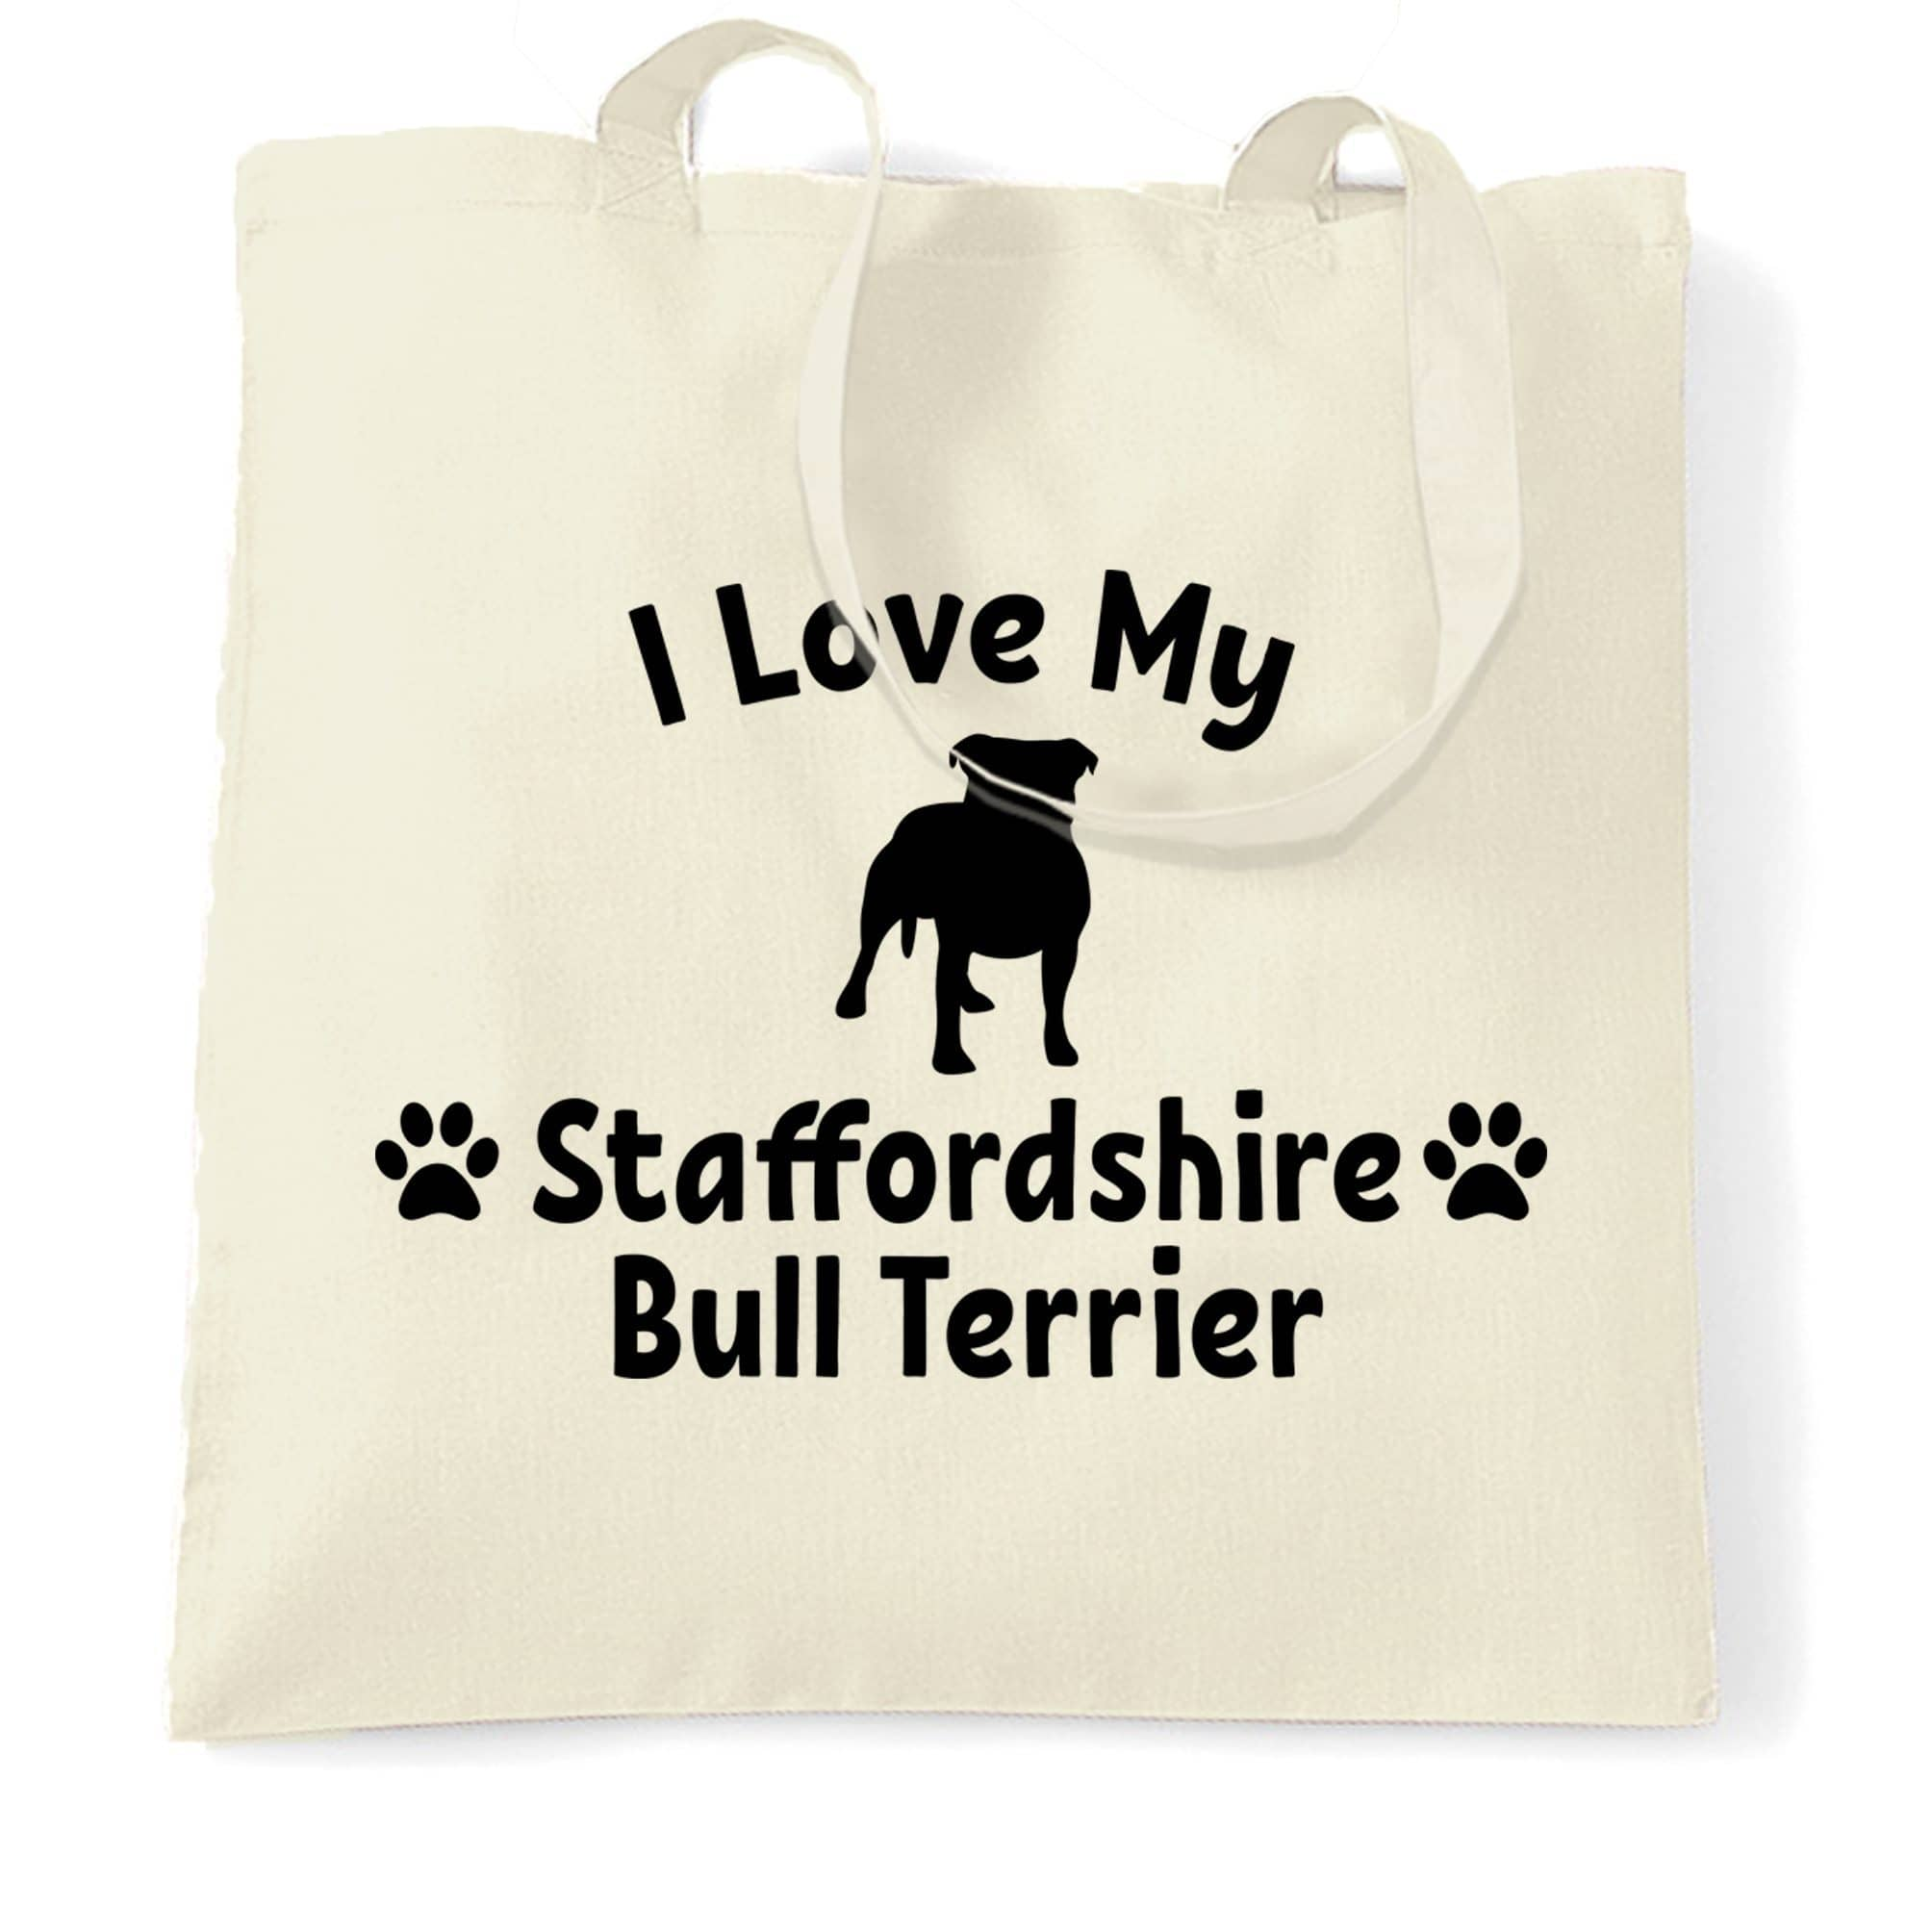 Dog Owner Tote Bag I Love My Staffordshire Bull Terrier